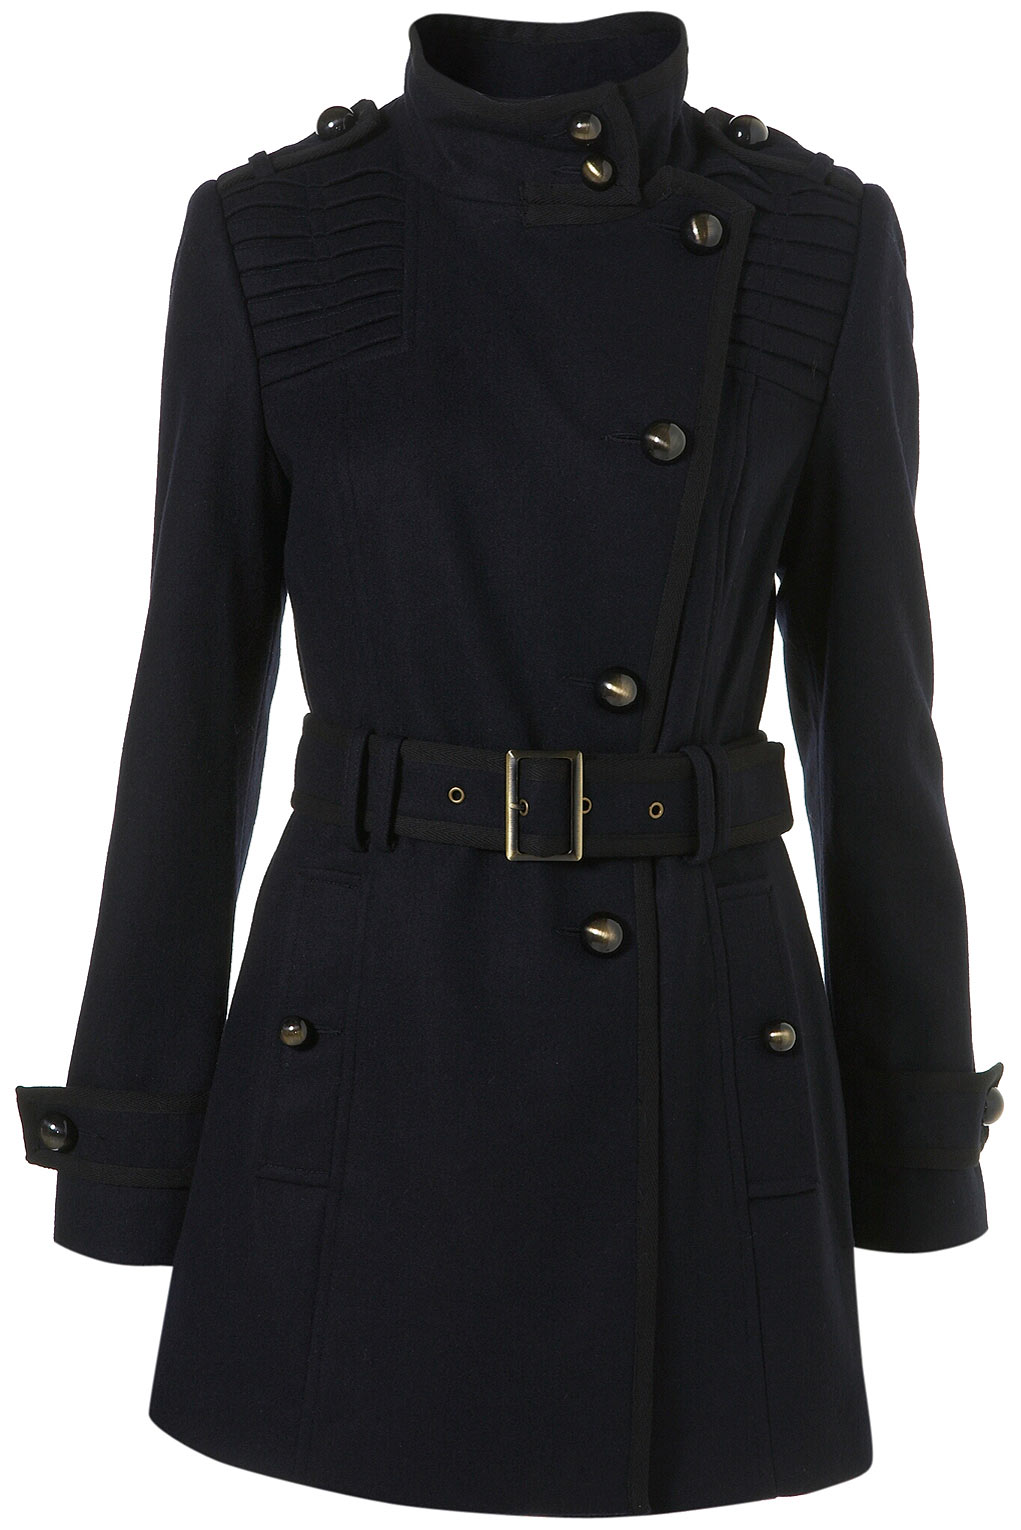 Military Coats Revised | Haute Galore